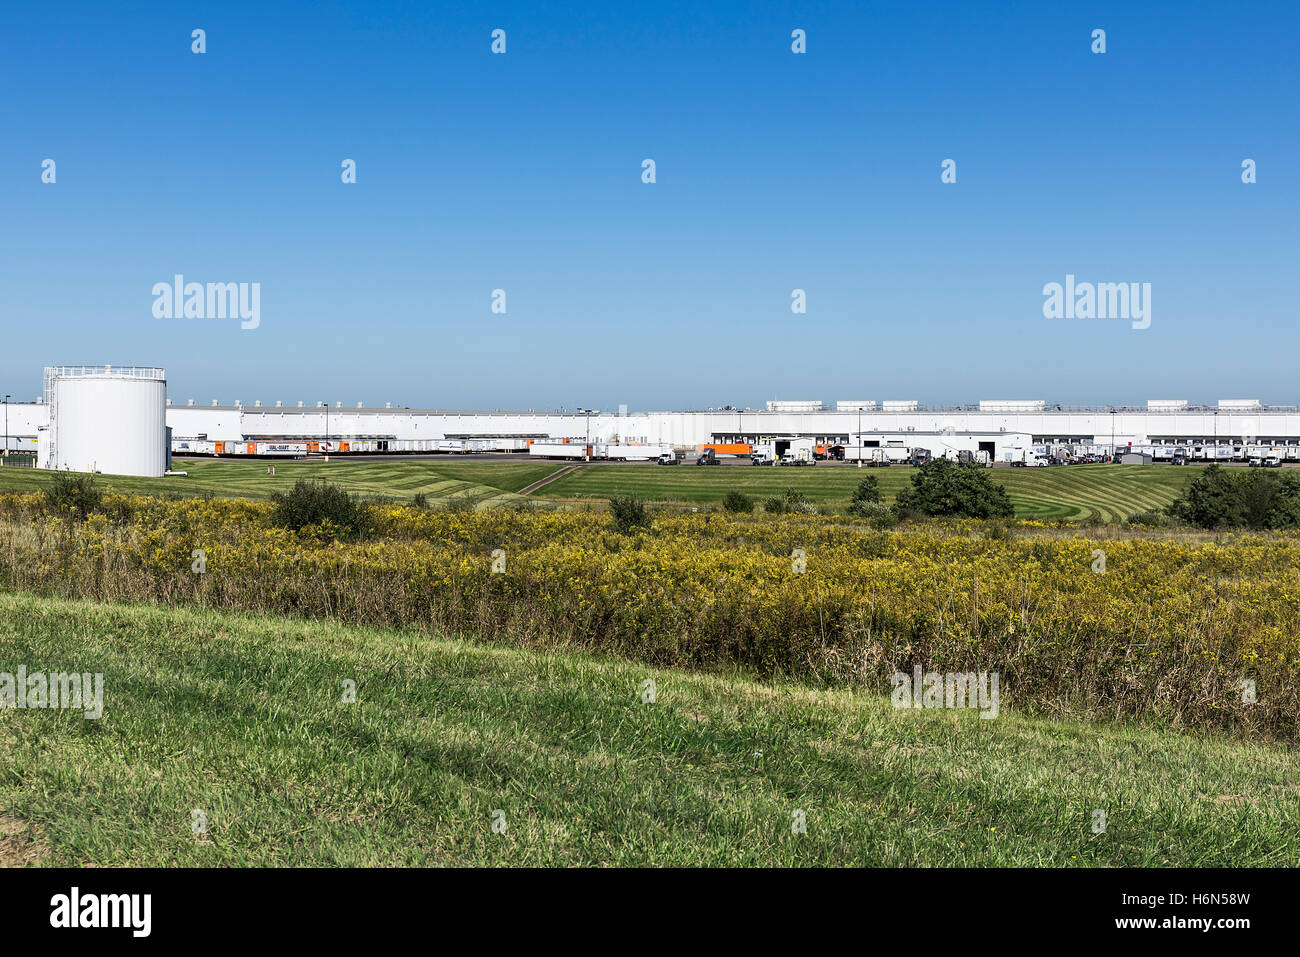 Wall-Mart distribution center, Steubenville, Ohio, USA. - Stock Image